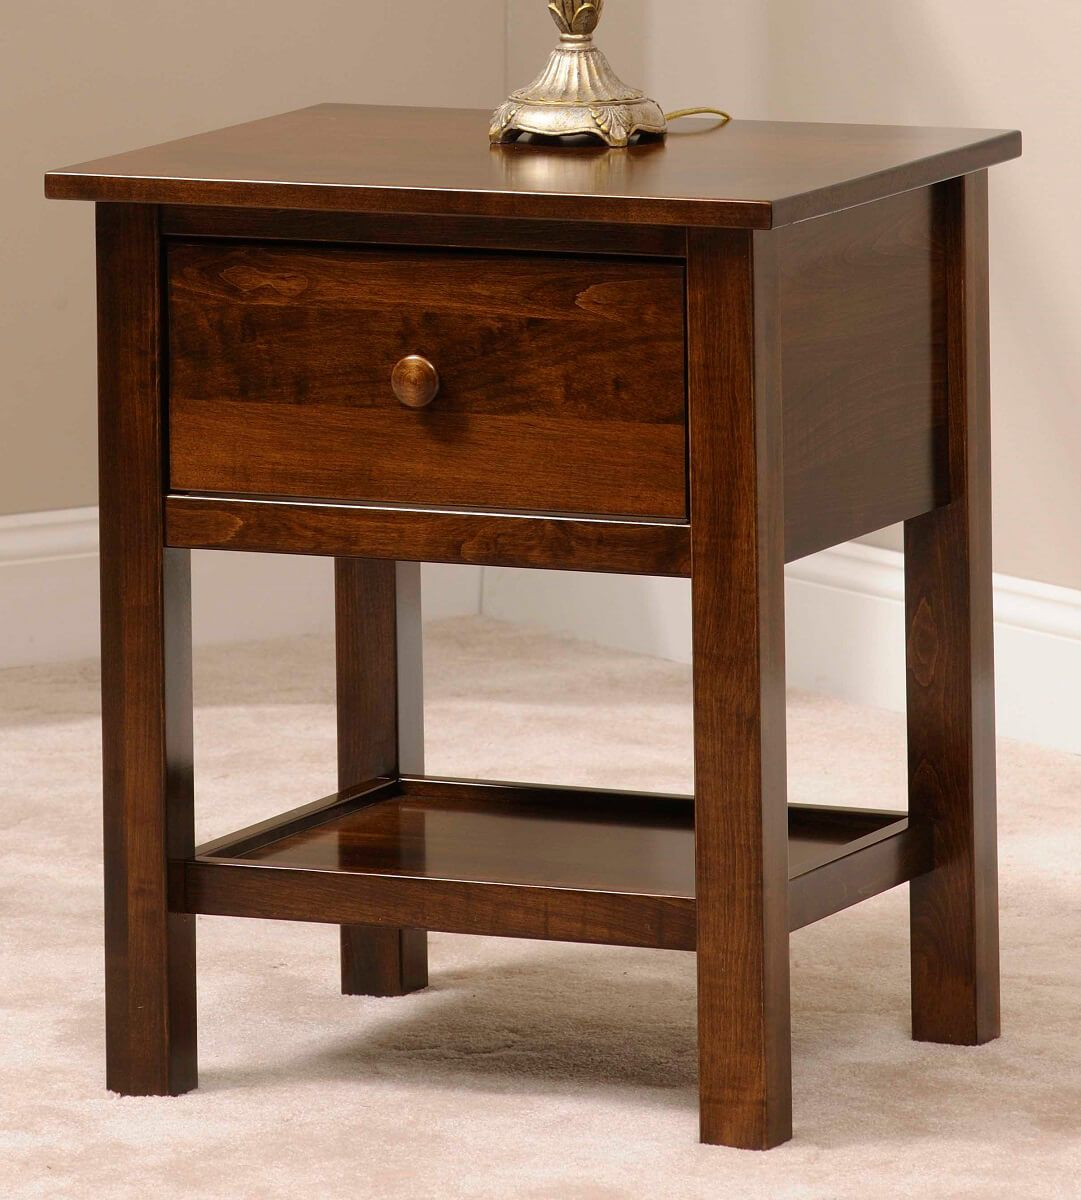 Peaceful Dreams Nightstand in Cafe Americano on Brown Maple